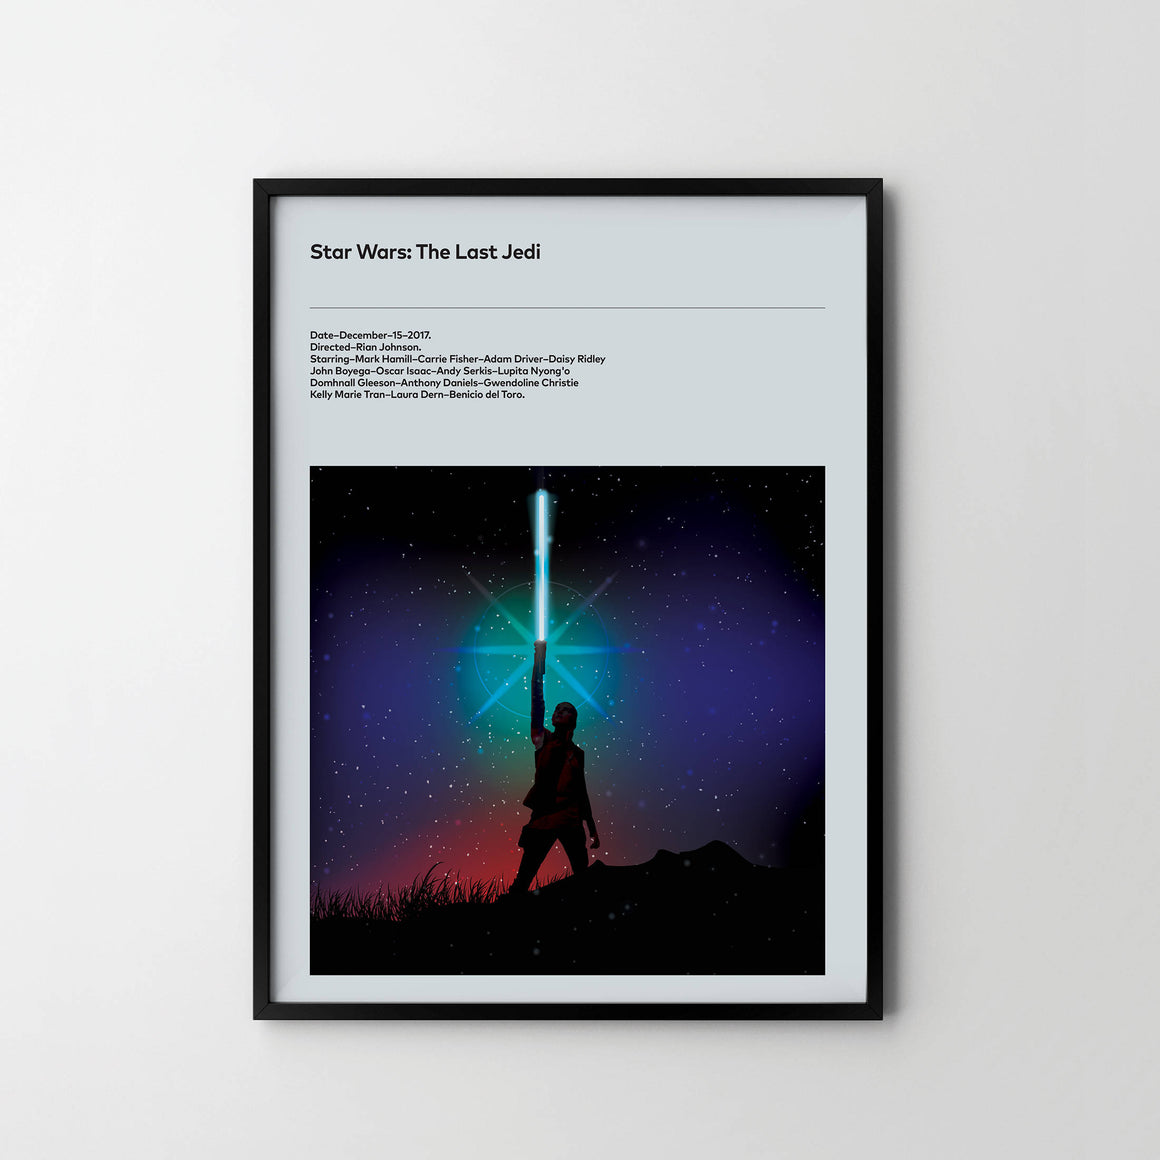 THE LAST JEDI 2017 Star Wars Movie Poster Art Print, Film Posters 201, Movie Film Posters - SOA State of Art